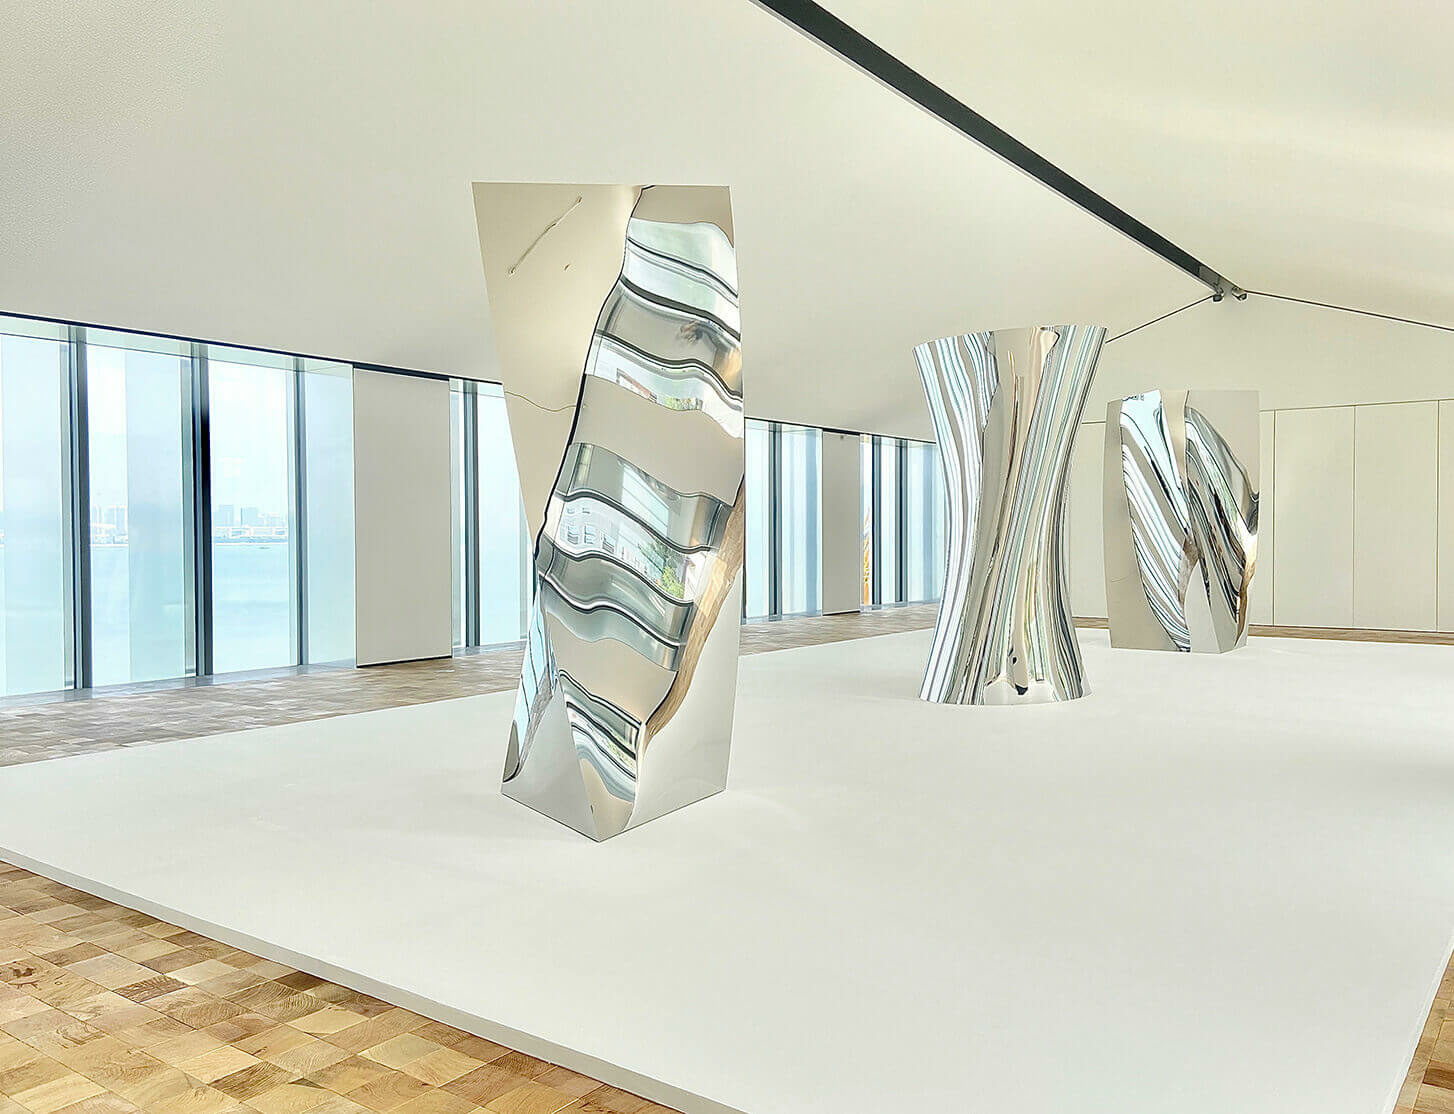 TAG Art Museum's inaugural exhibition features work by Richard Deacon, Anish Kapoor and Liu Xiaodong